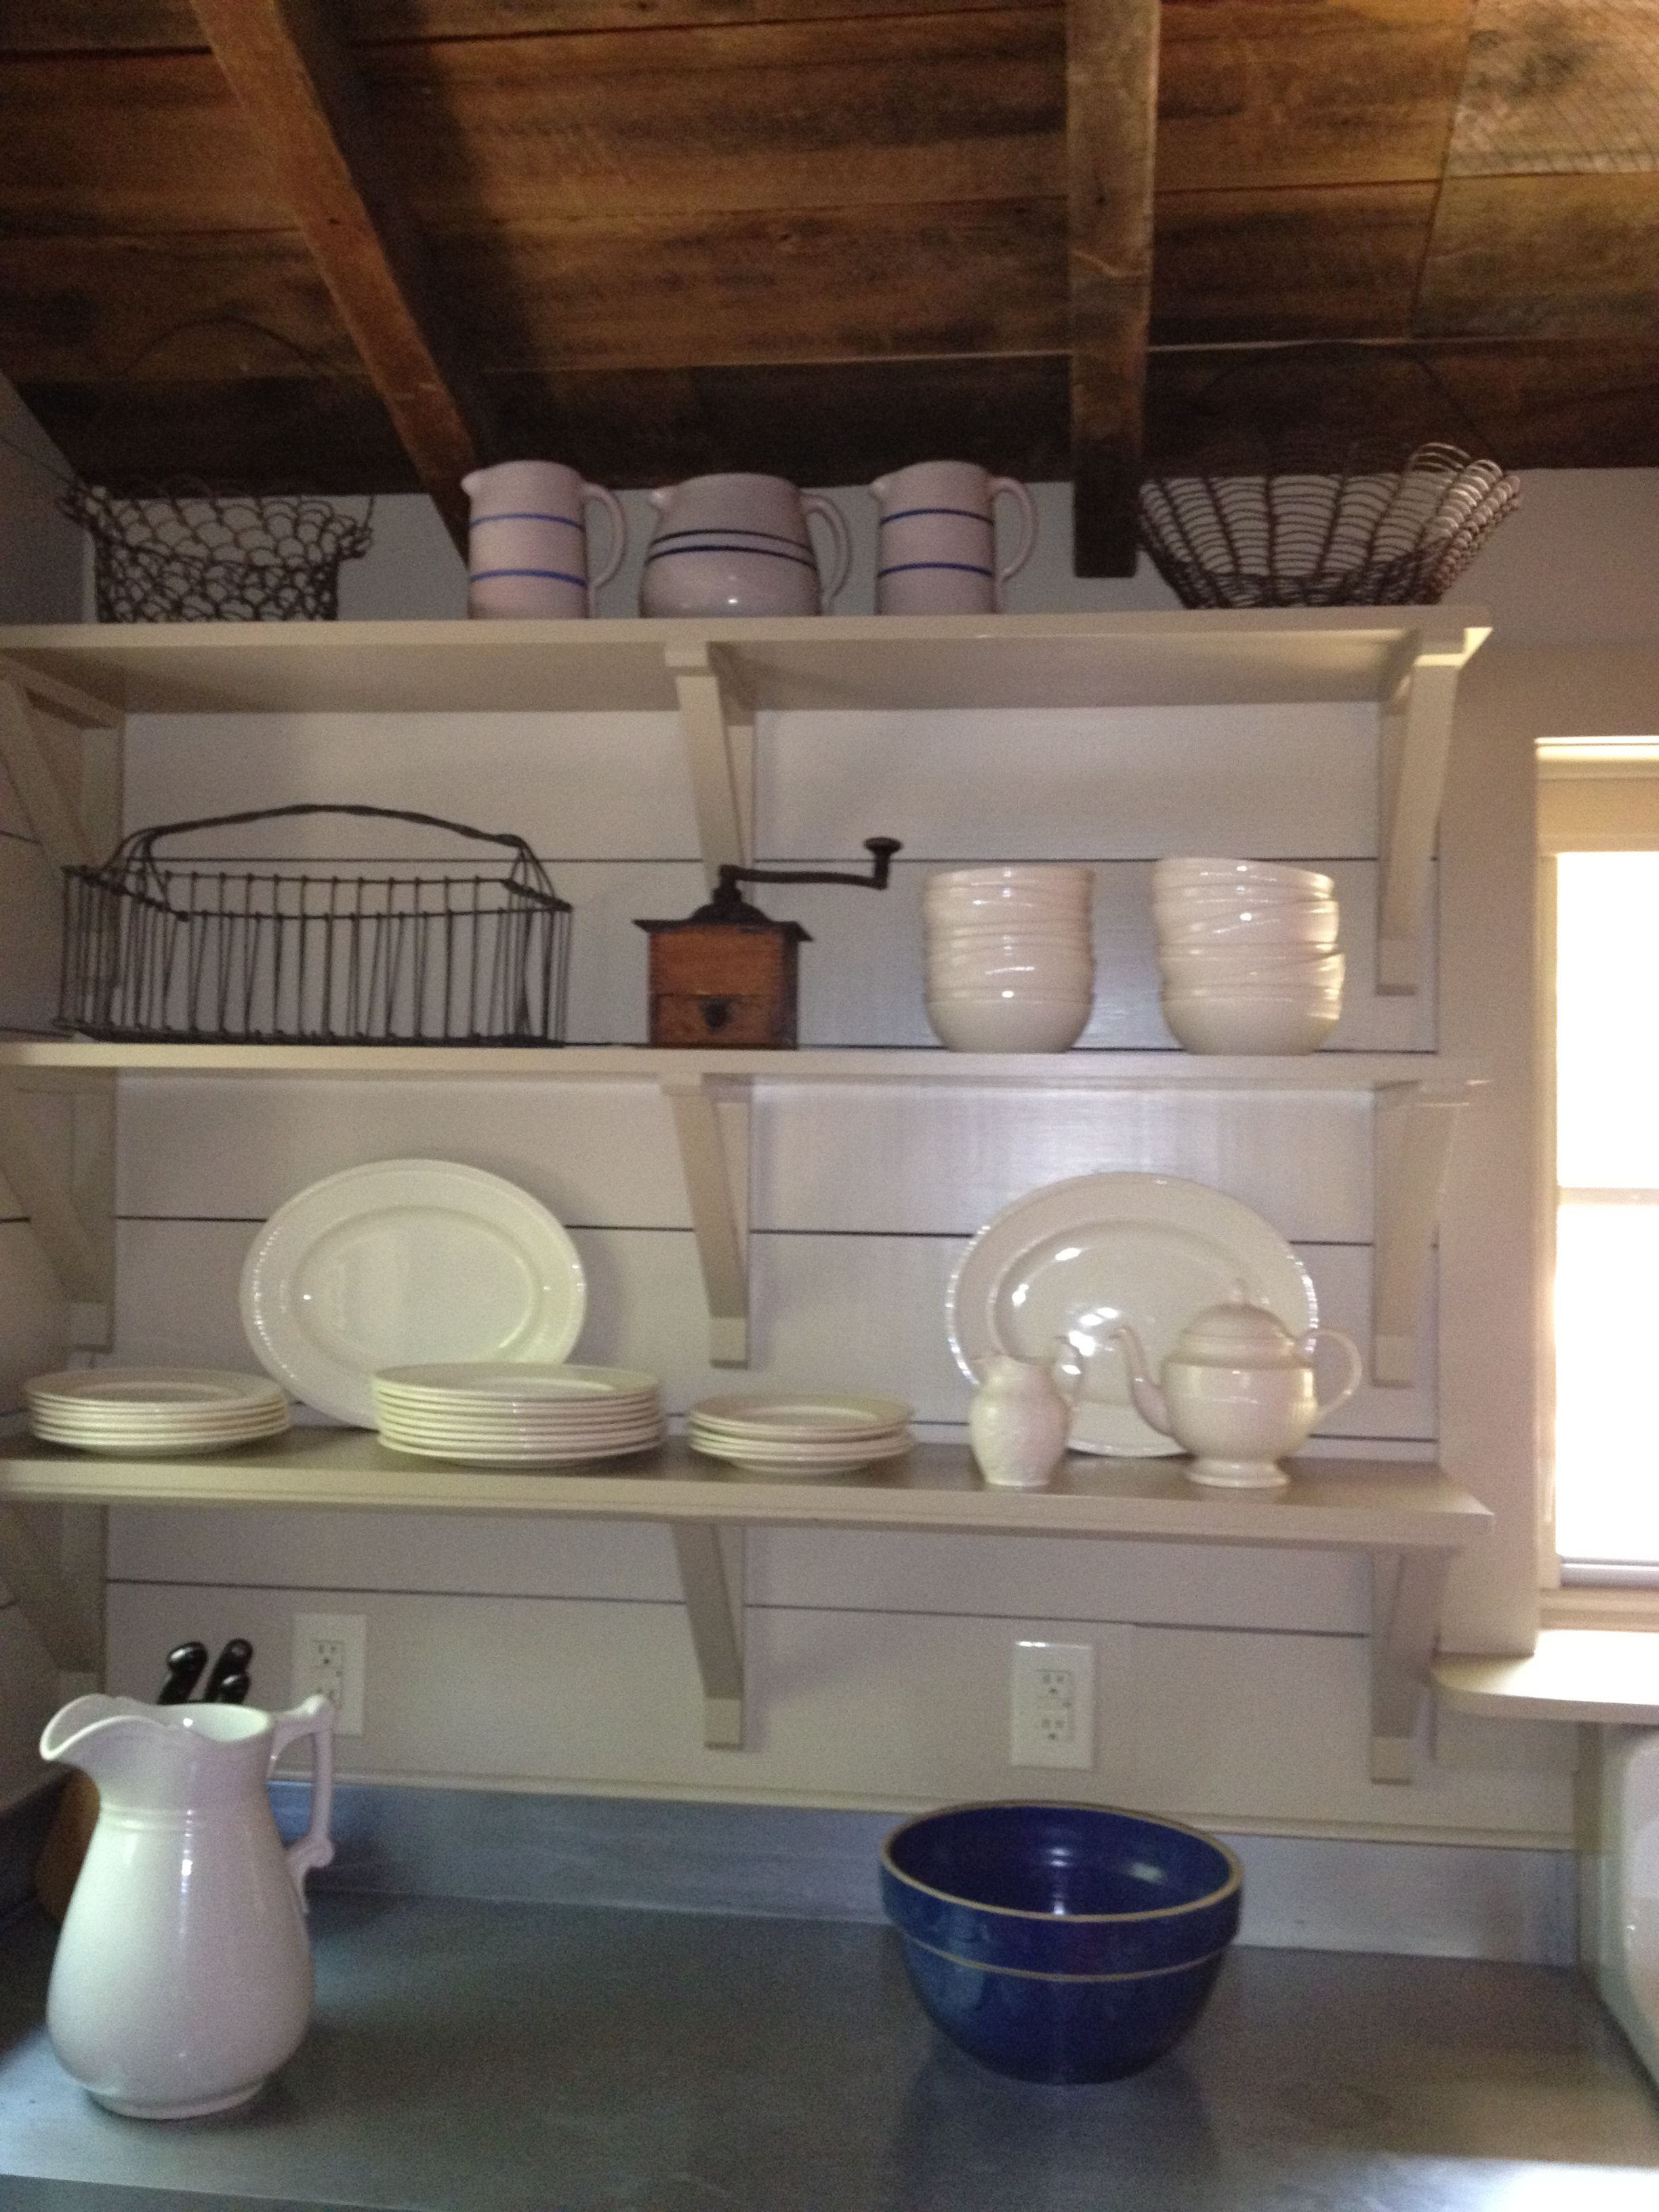 Open shelves in the log house kitchen. The dishes are Wedgwood Edme on log home kitchen tile, tree countertops, log home kitchen colors, log home mirrors, log home railings, log home kitchen cabinets, log home kitchen remodel, log home kitchen layouts, log home outdoor kitchens, log home kitchen appliances, log home swimming pools, log home kitchen additions, log home kitchen curtains, log home custom cabinets, log home remodeling, log home kitchen islands, birch wood countertops, log home concrete countertops, log home ceiling ideas, log home kitchen interior,